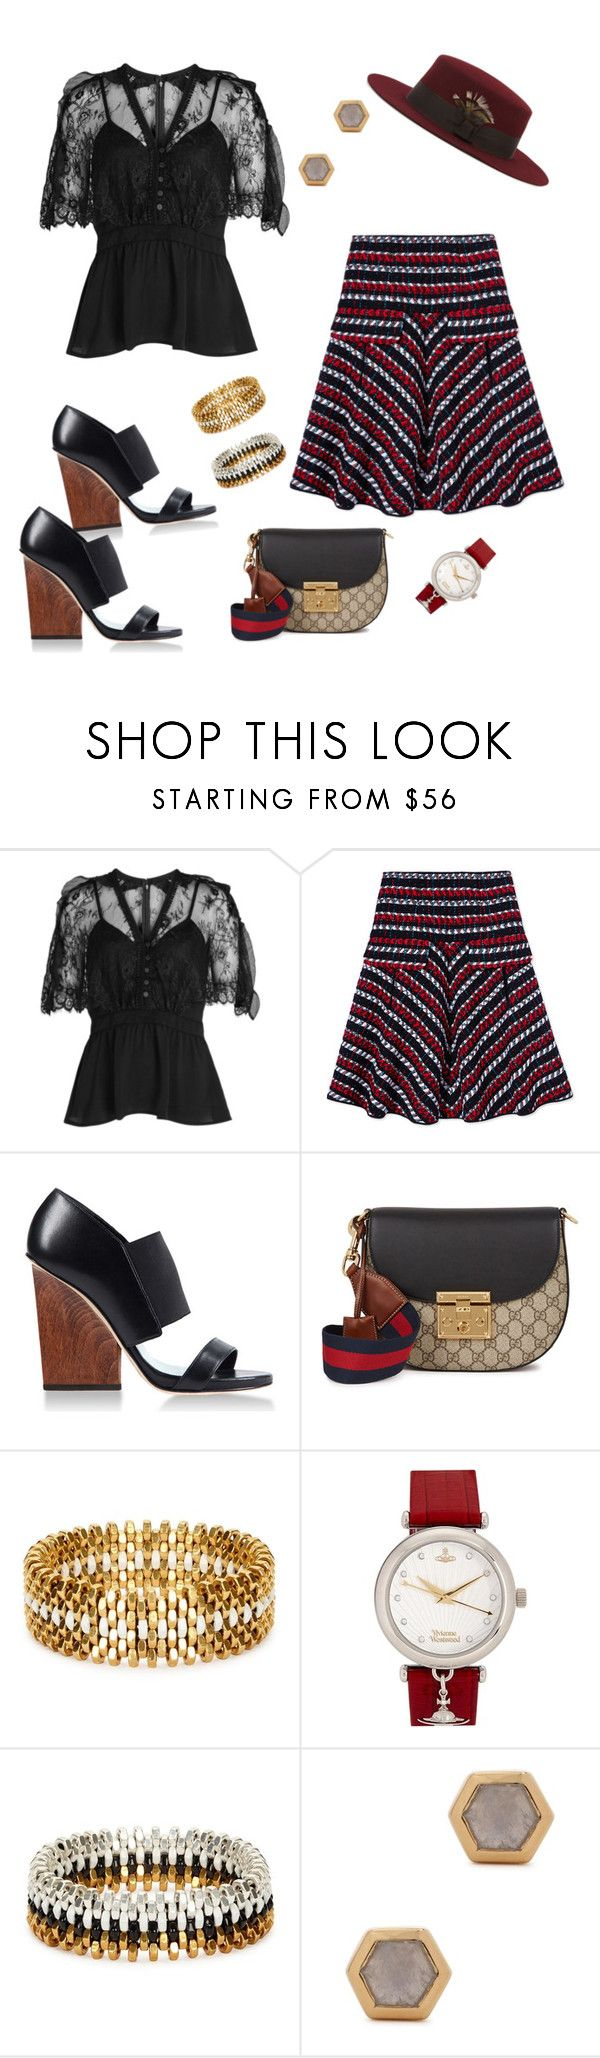 """skirt"" by marlenewelke ❤ liked on Polyvore featuring self-portrait, Oscar de la Renta, Maiyet, Gucci, Alice Menter, Vivienne Westwood, Missoma and Christys'"